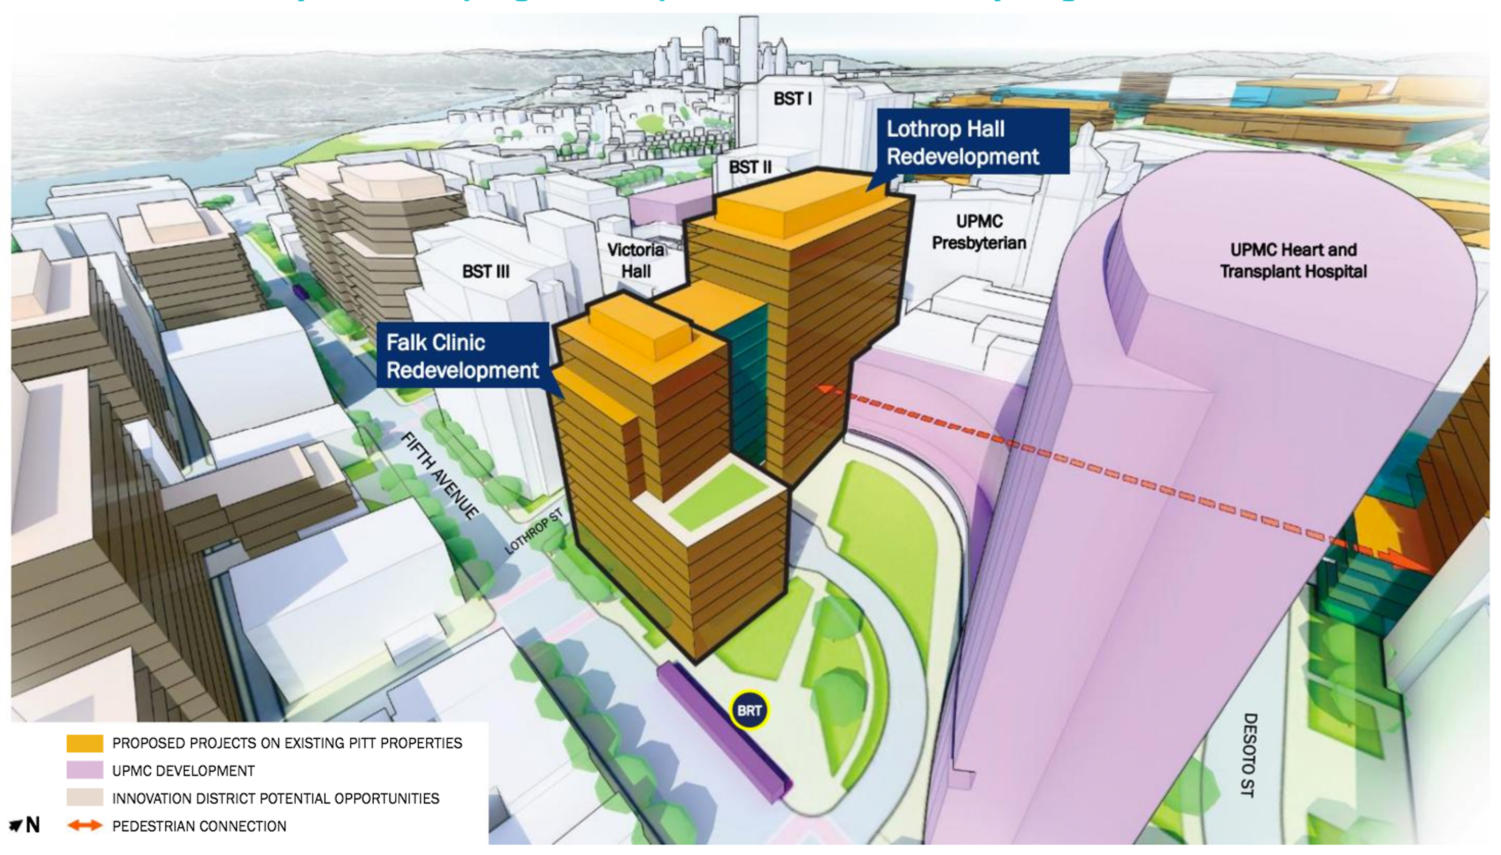 The planned UPMC Heart and Transplant Hospital as depicted in the University of Pittsburgh Campus Master Plan. (Image via University of Pittsburgh)